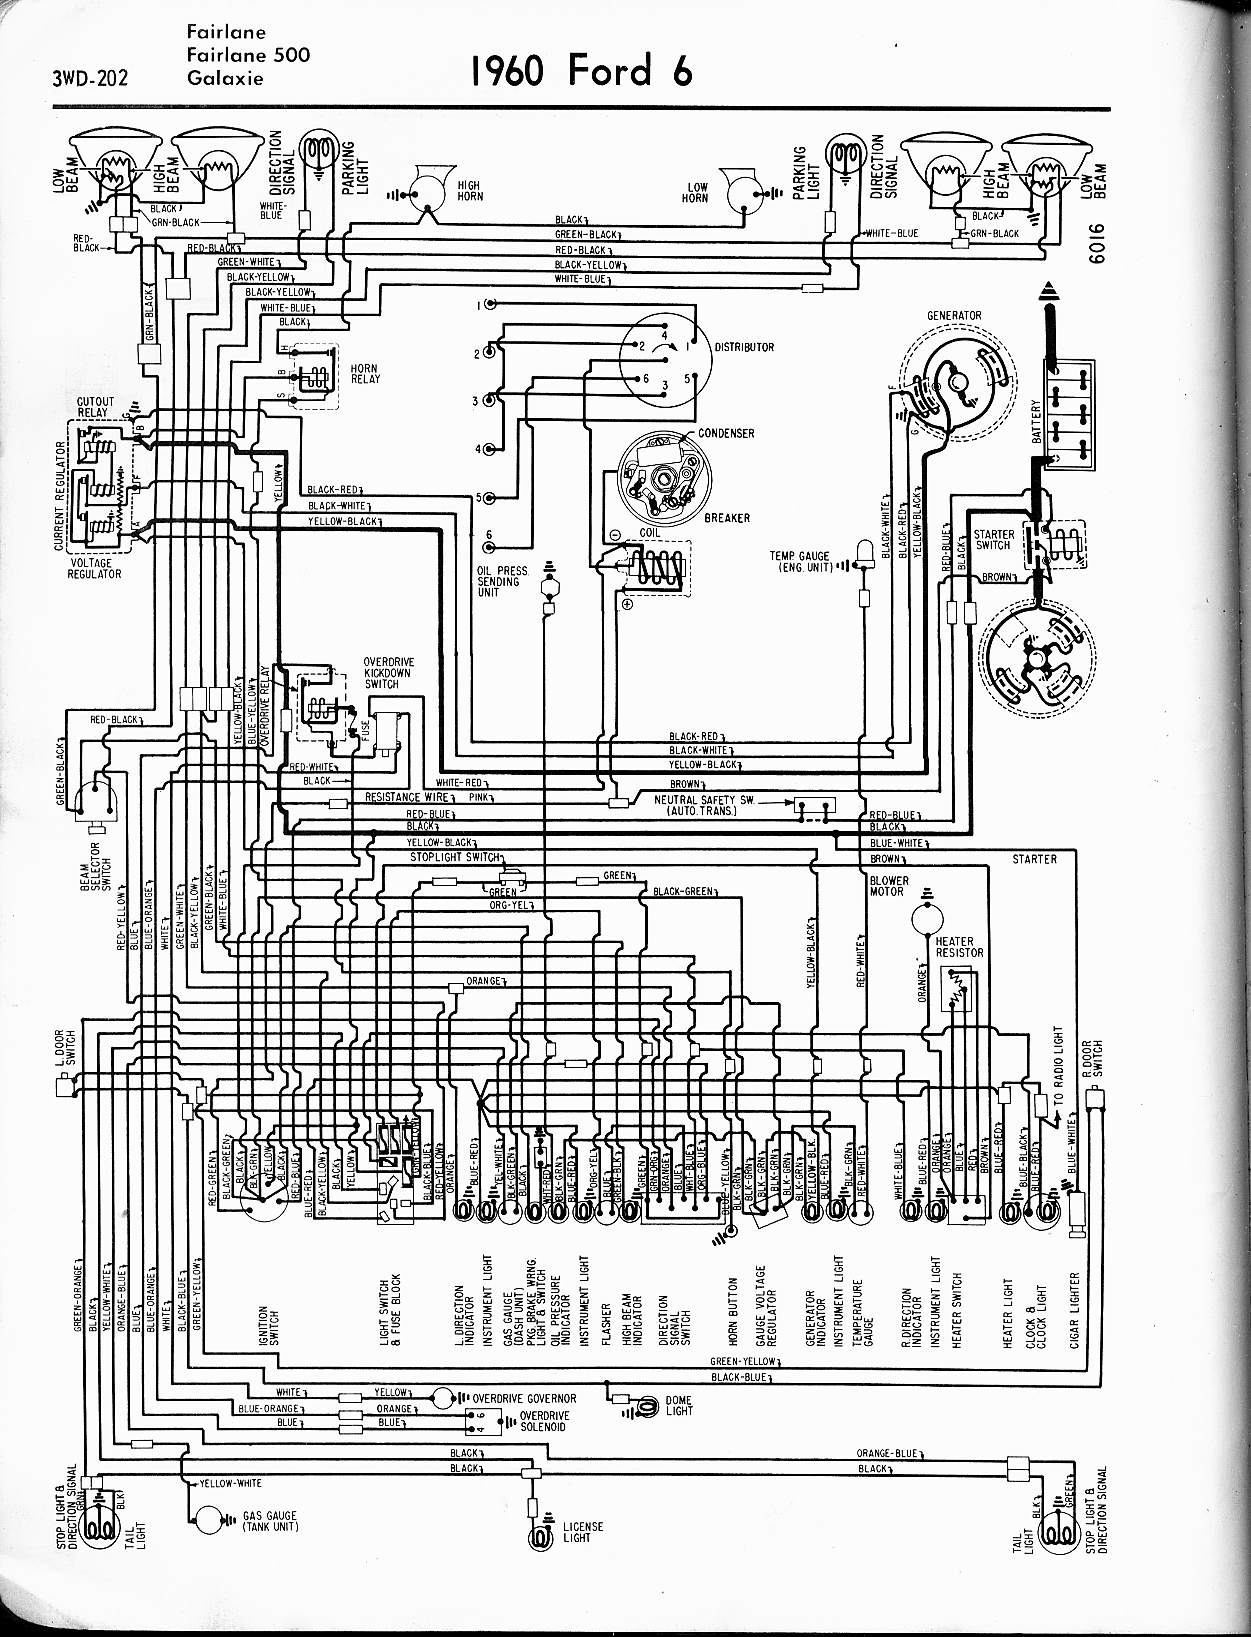 1960 dodge wiring diagram simple wiring diagram schema1960 dodge instrument wiring diagram simple wiring post dodge repair diagrams 1960 dodge wiring diagram